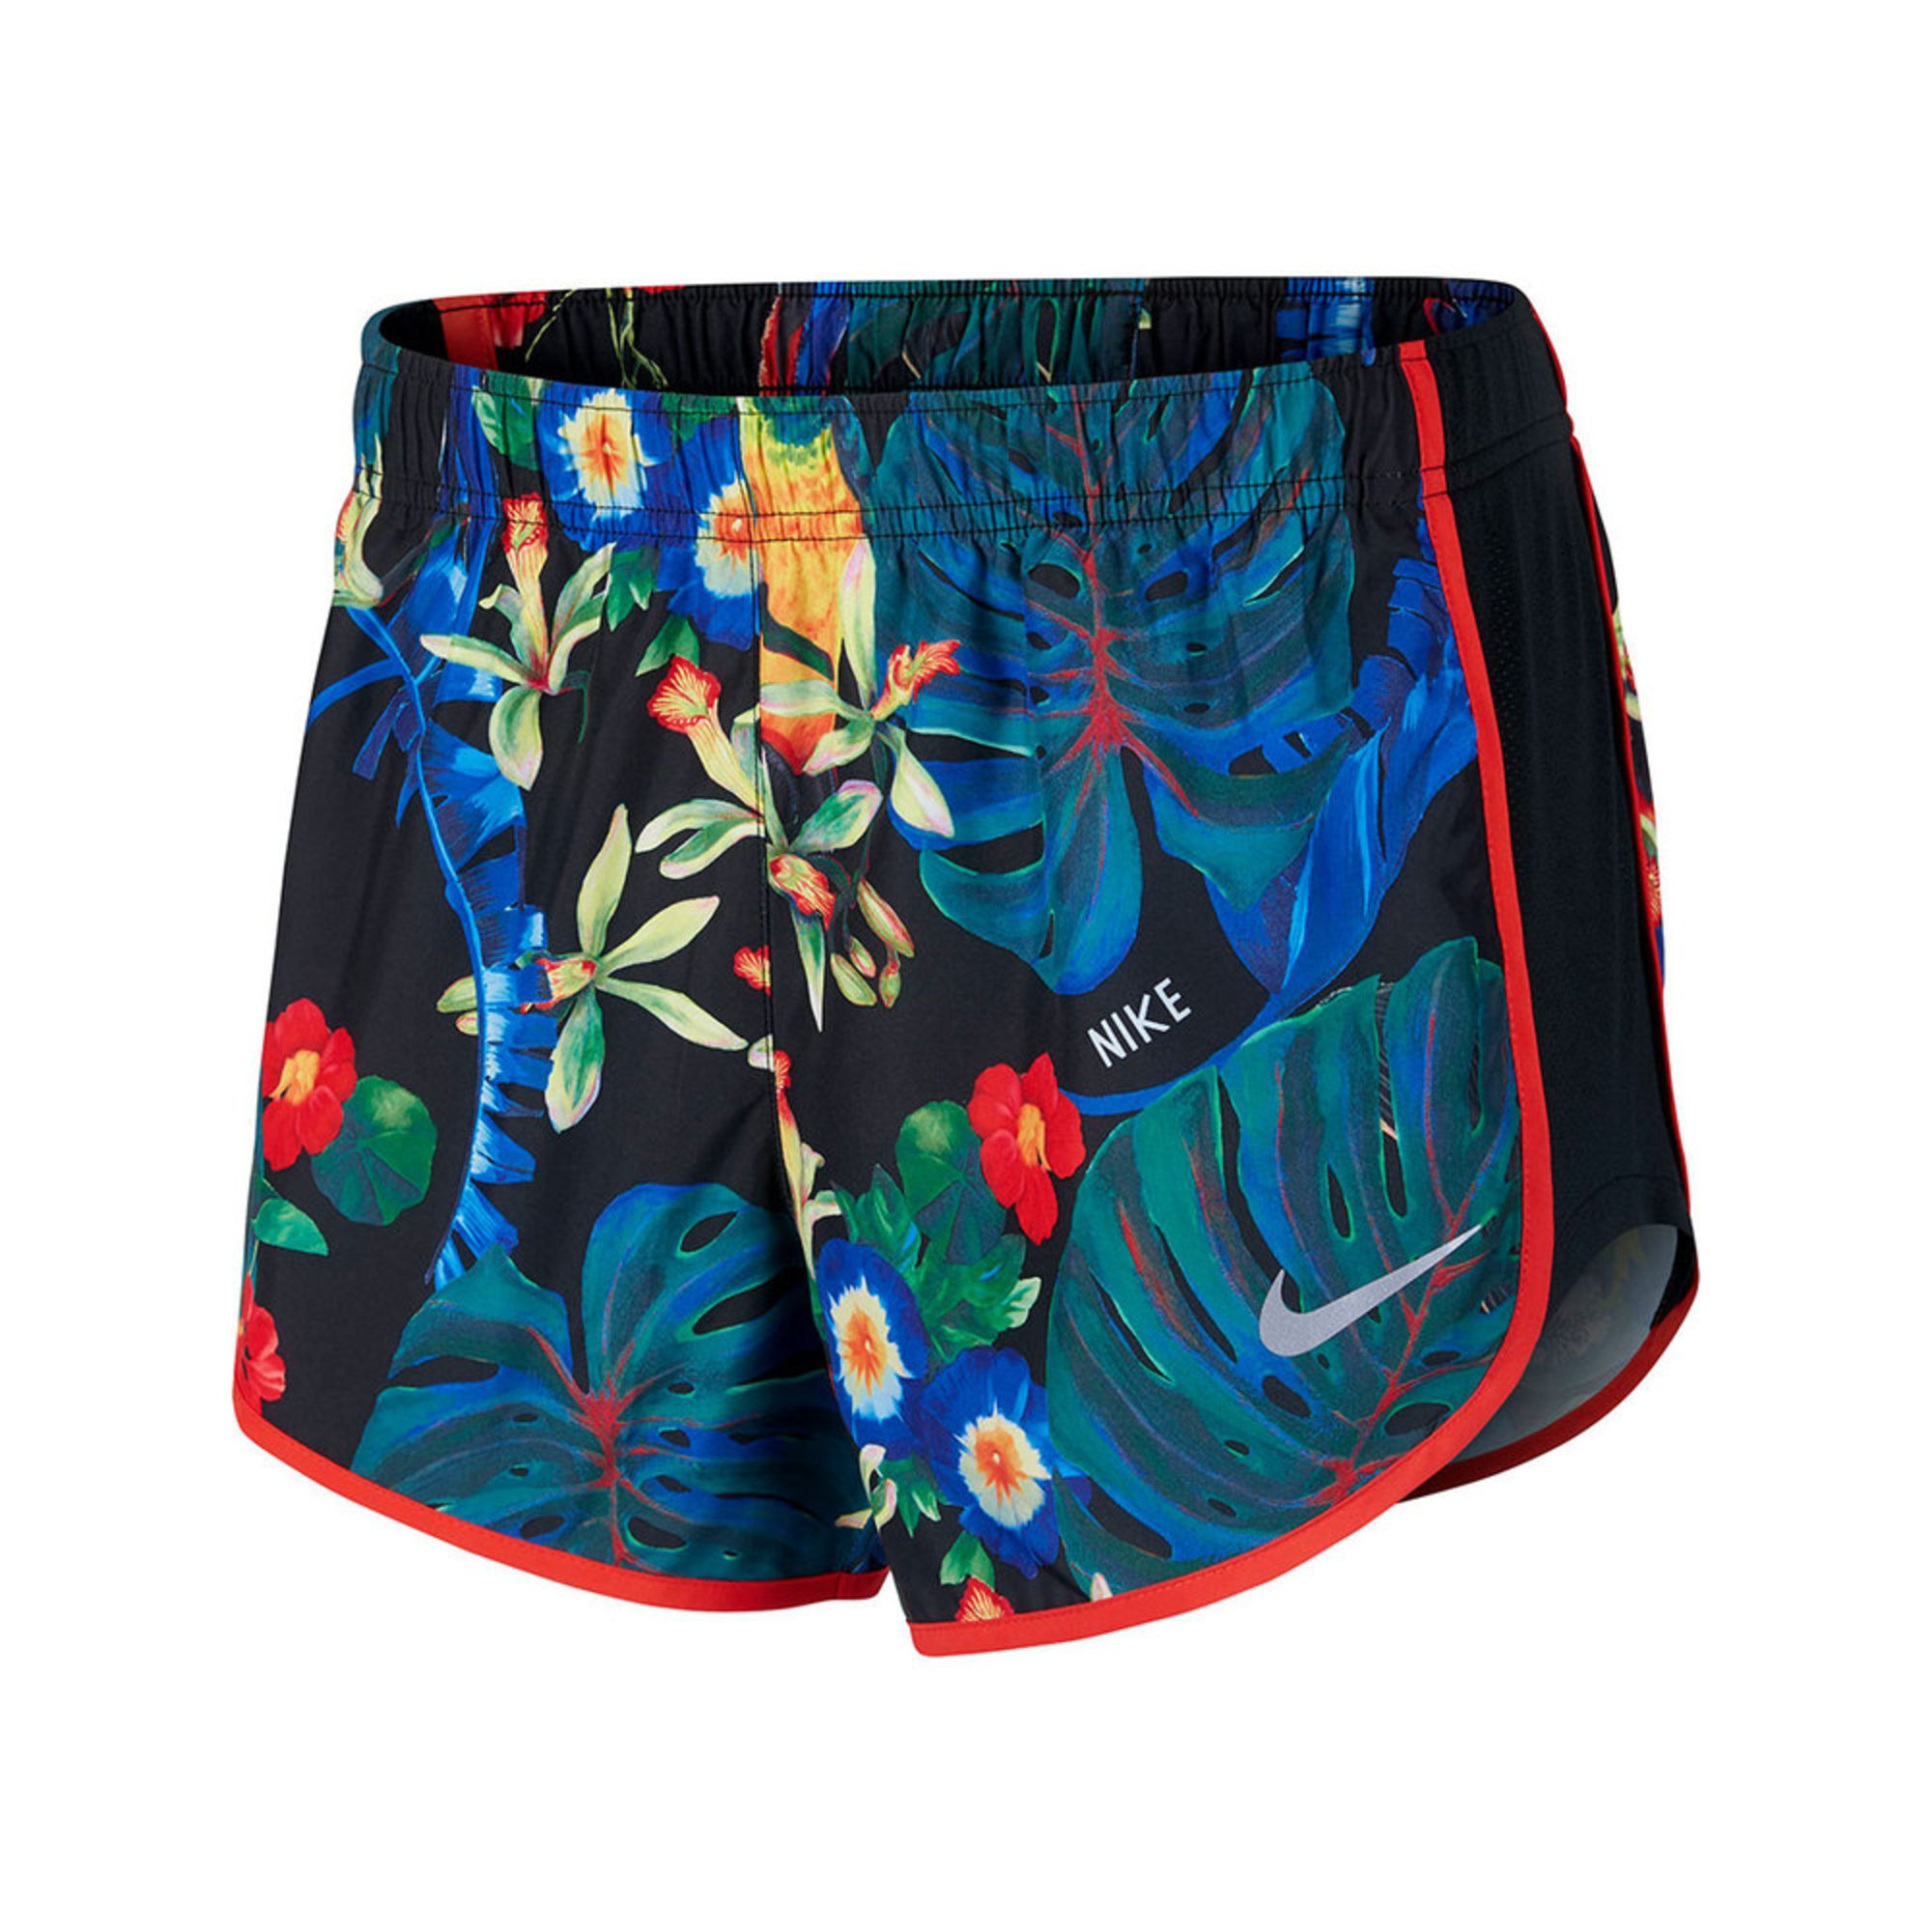 release date 06b4e 32729 Nike Women s Nike Dry Tempo Short   Active Shorts And Skirts   Apparel -  Shop Your Navy Exchange - Official Site